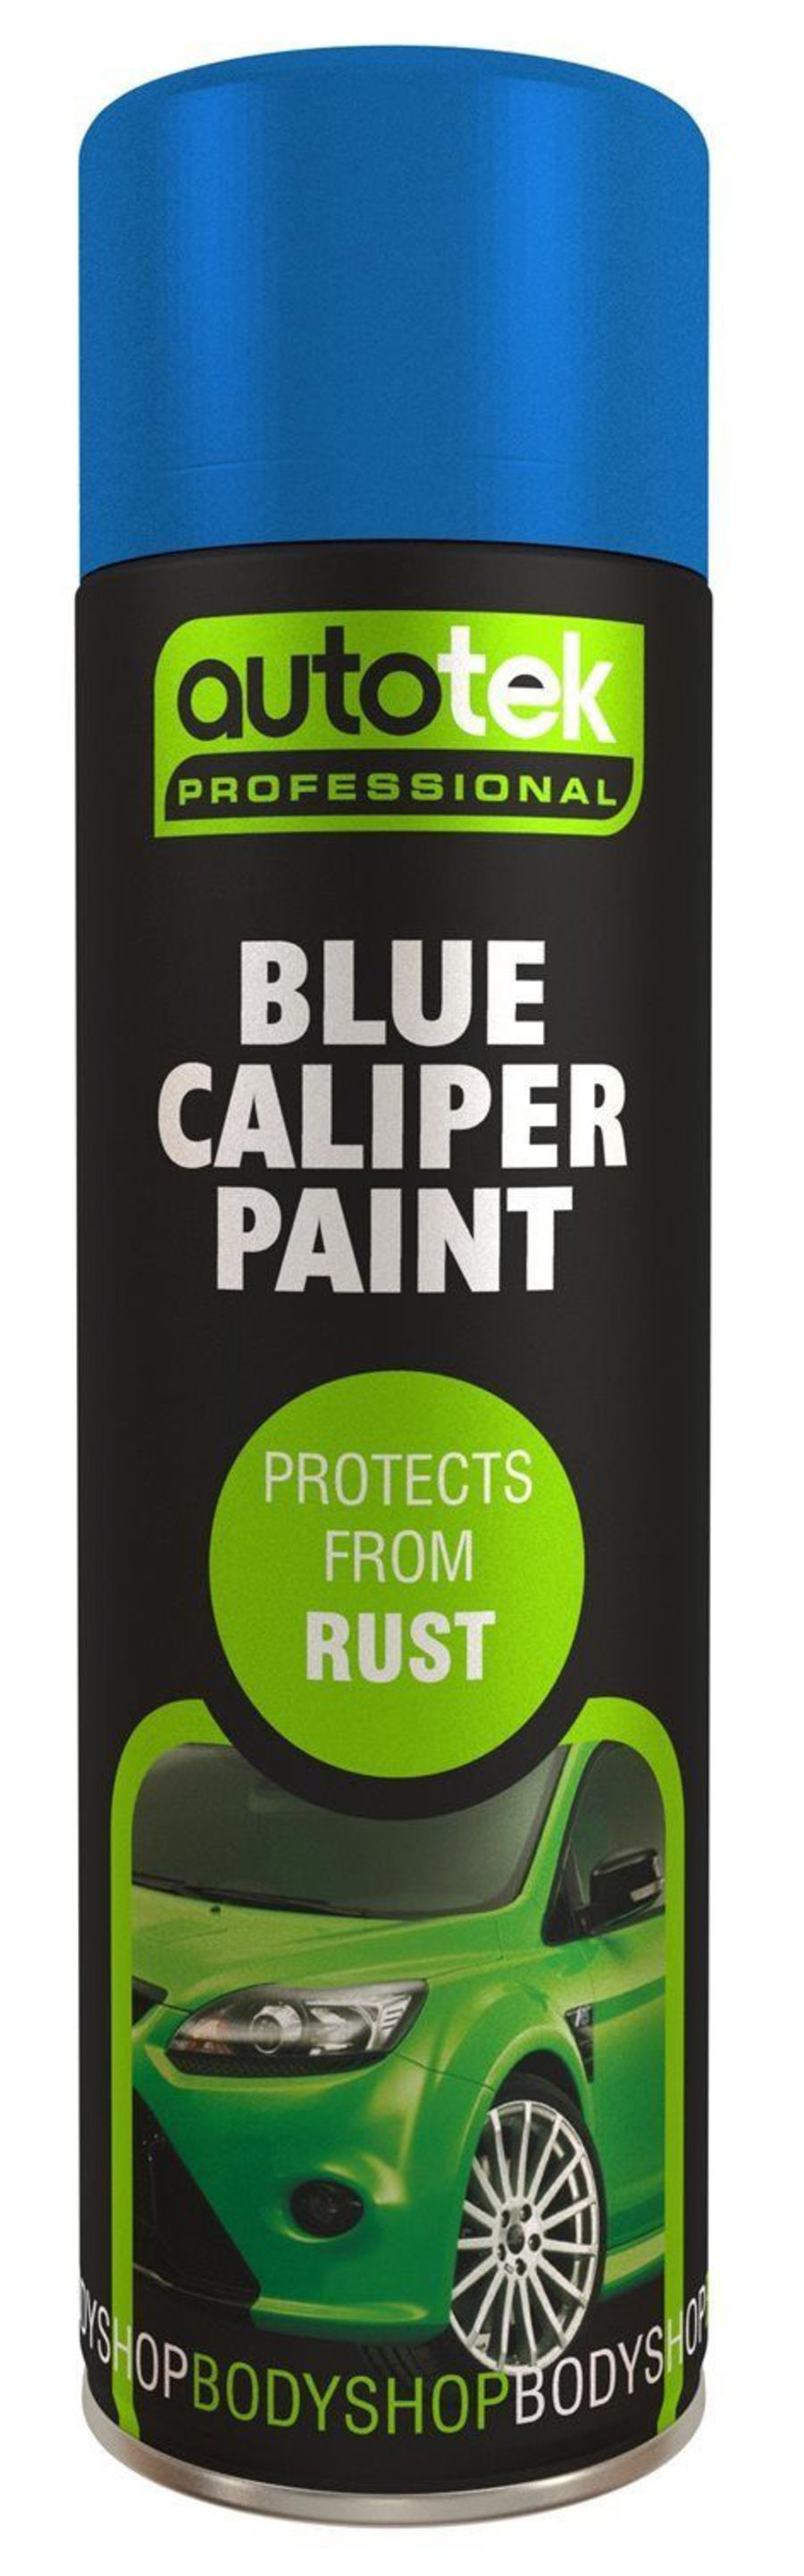 Aerosol Caliper Paint - Blue - 500ml